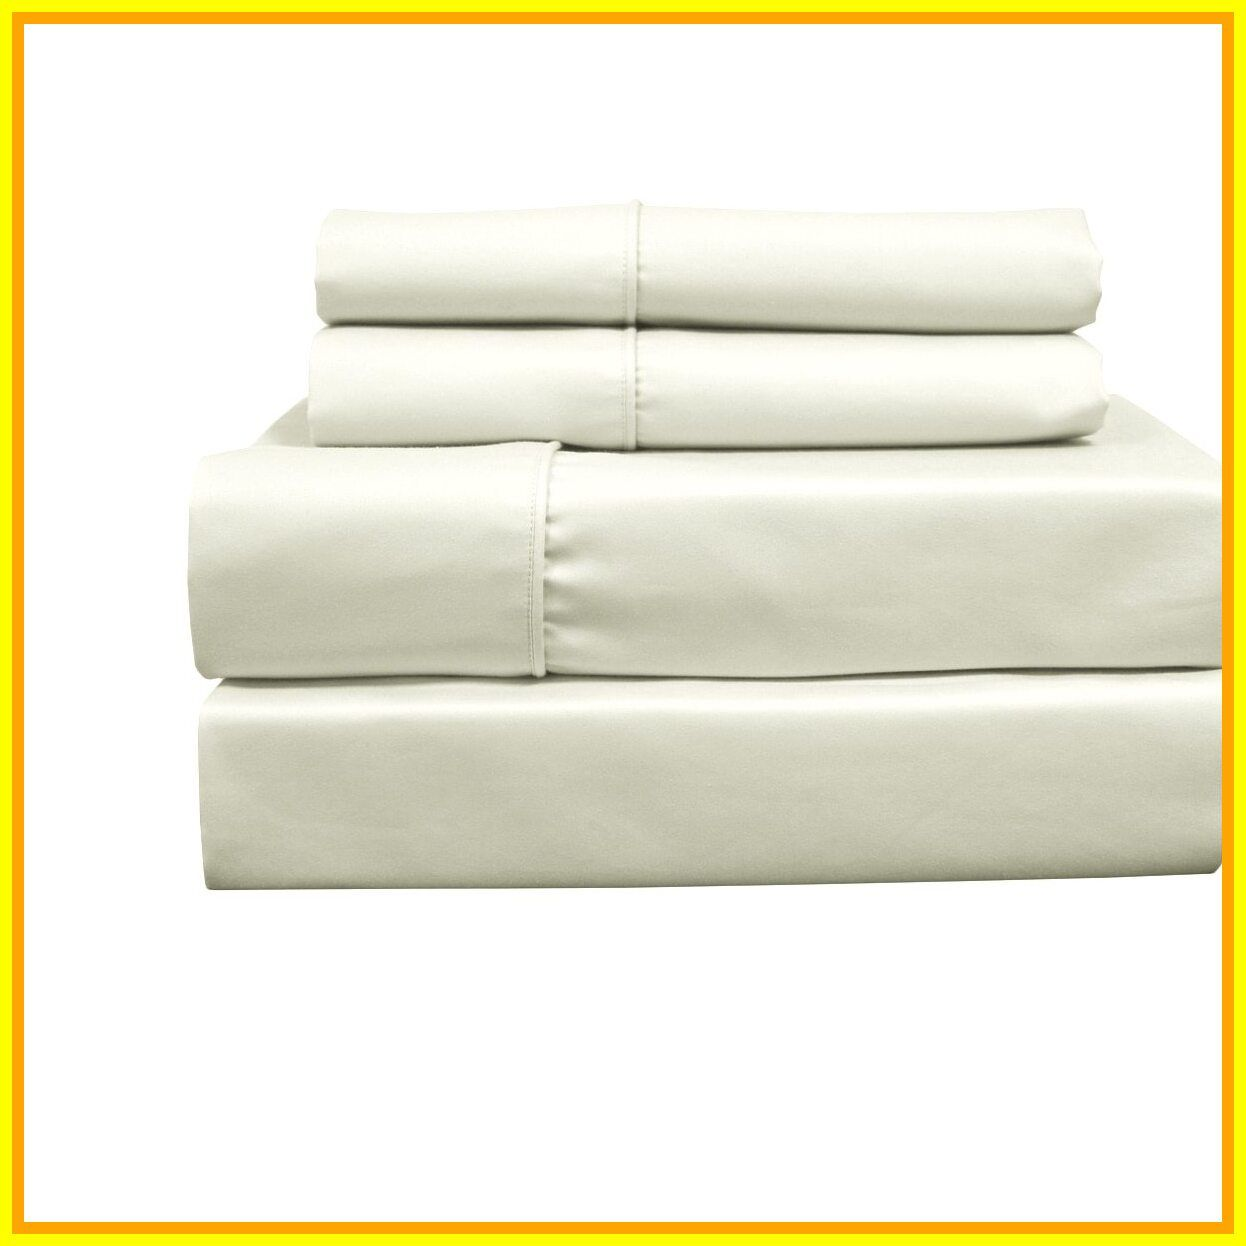 102 Reference Of Bed Sheets Cotton Vs Polyester Bed Sheets King Sheet Sets King Bed Sheets